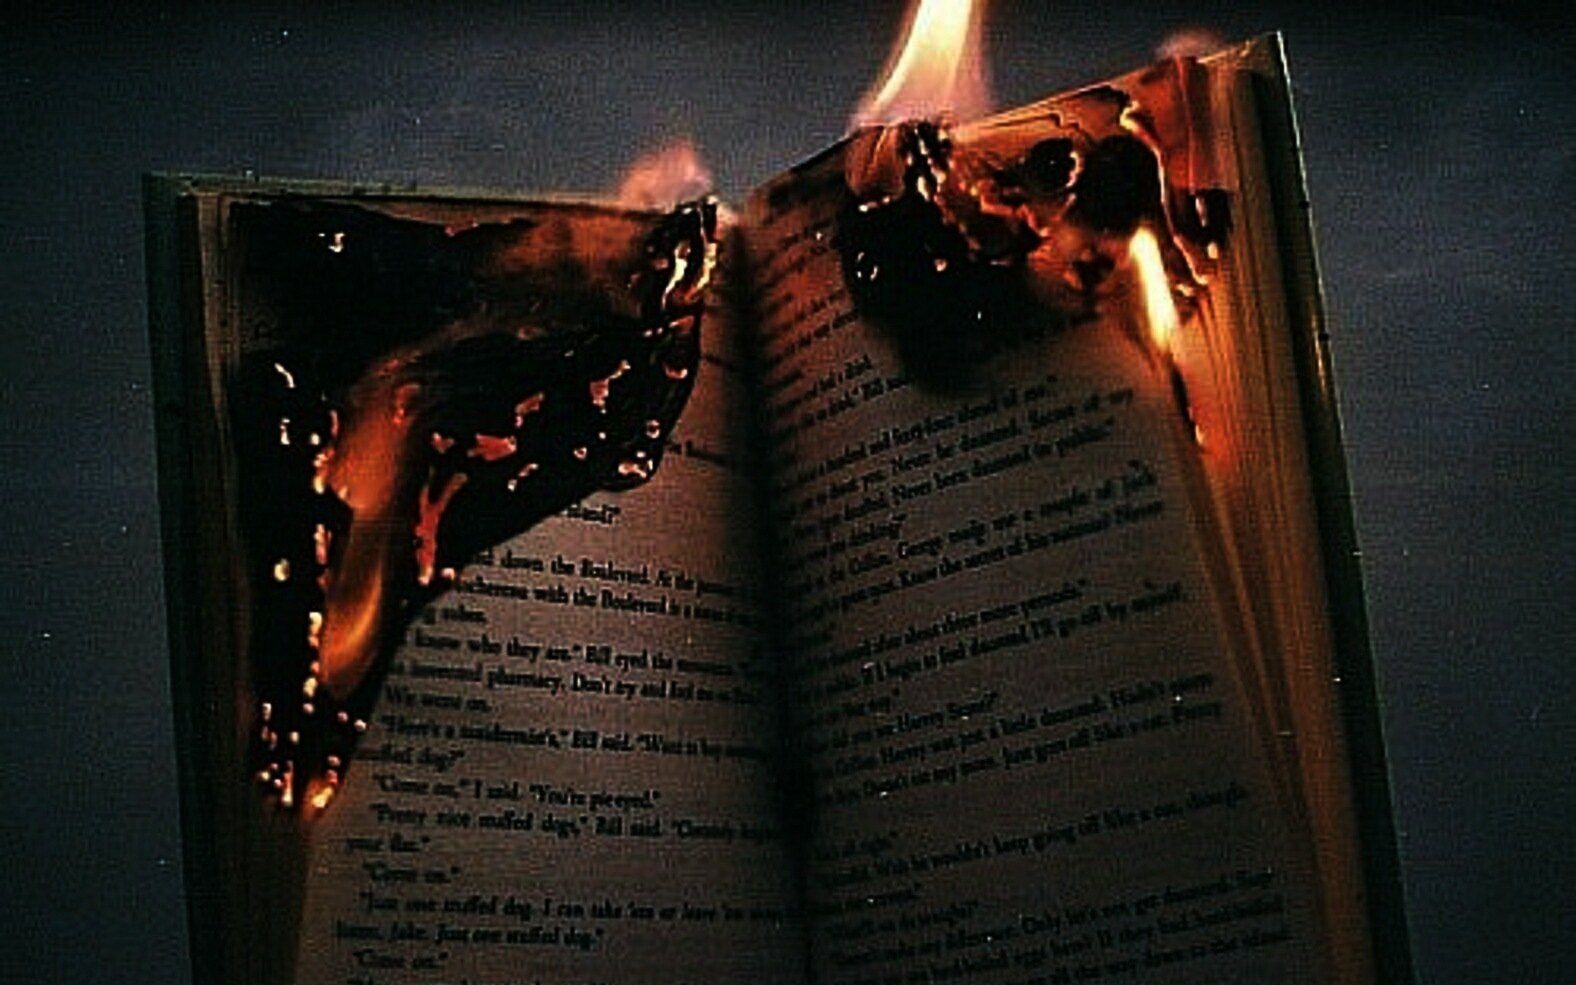 Pin By Aminath Shymer On Books Fire Photography Book Burning The Book Thief